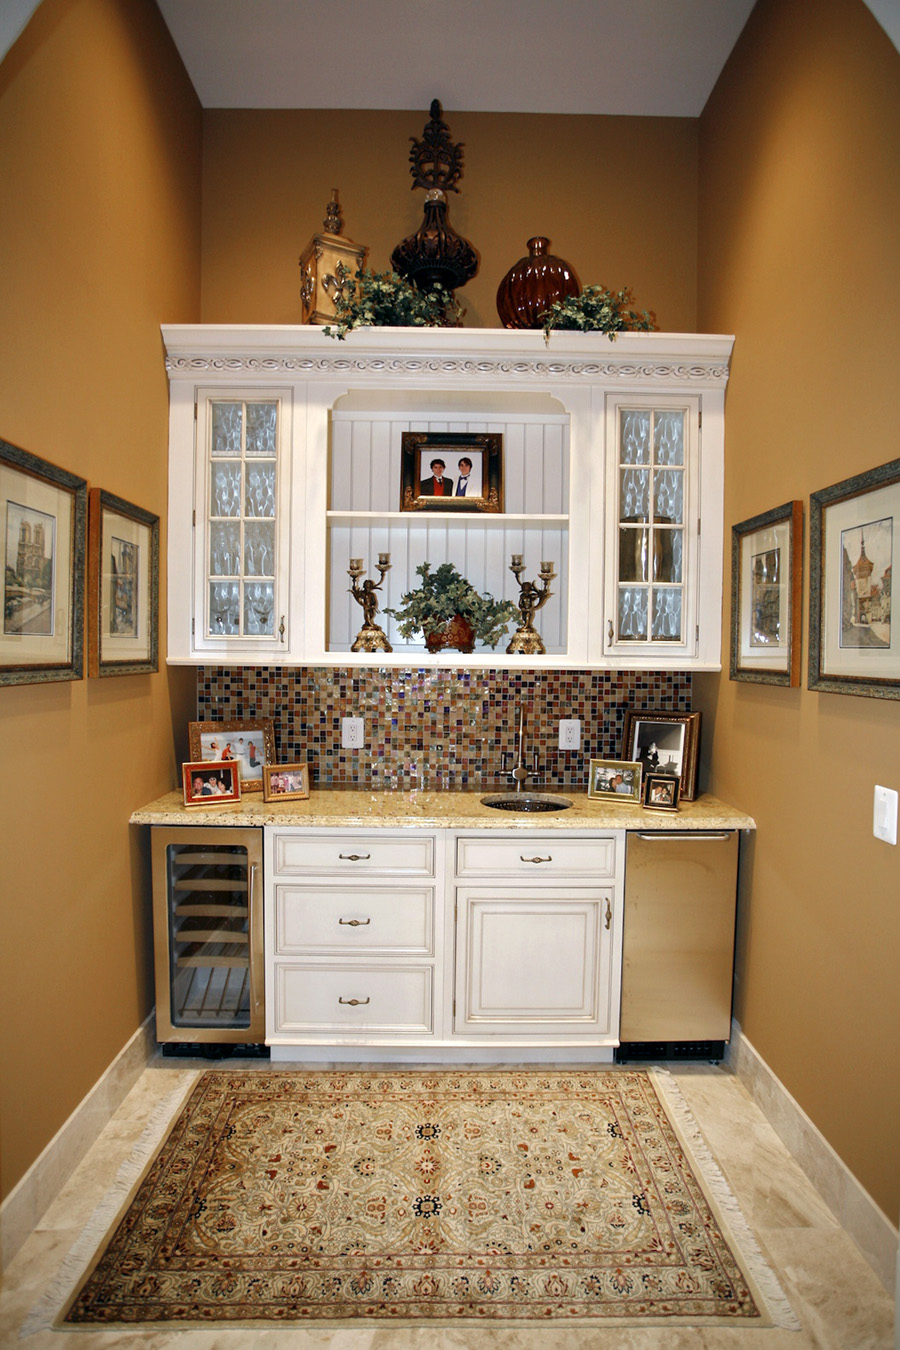 Built-in cabinets in the kitchen